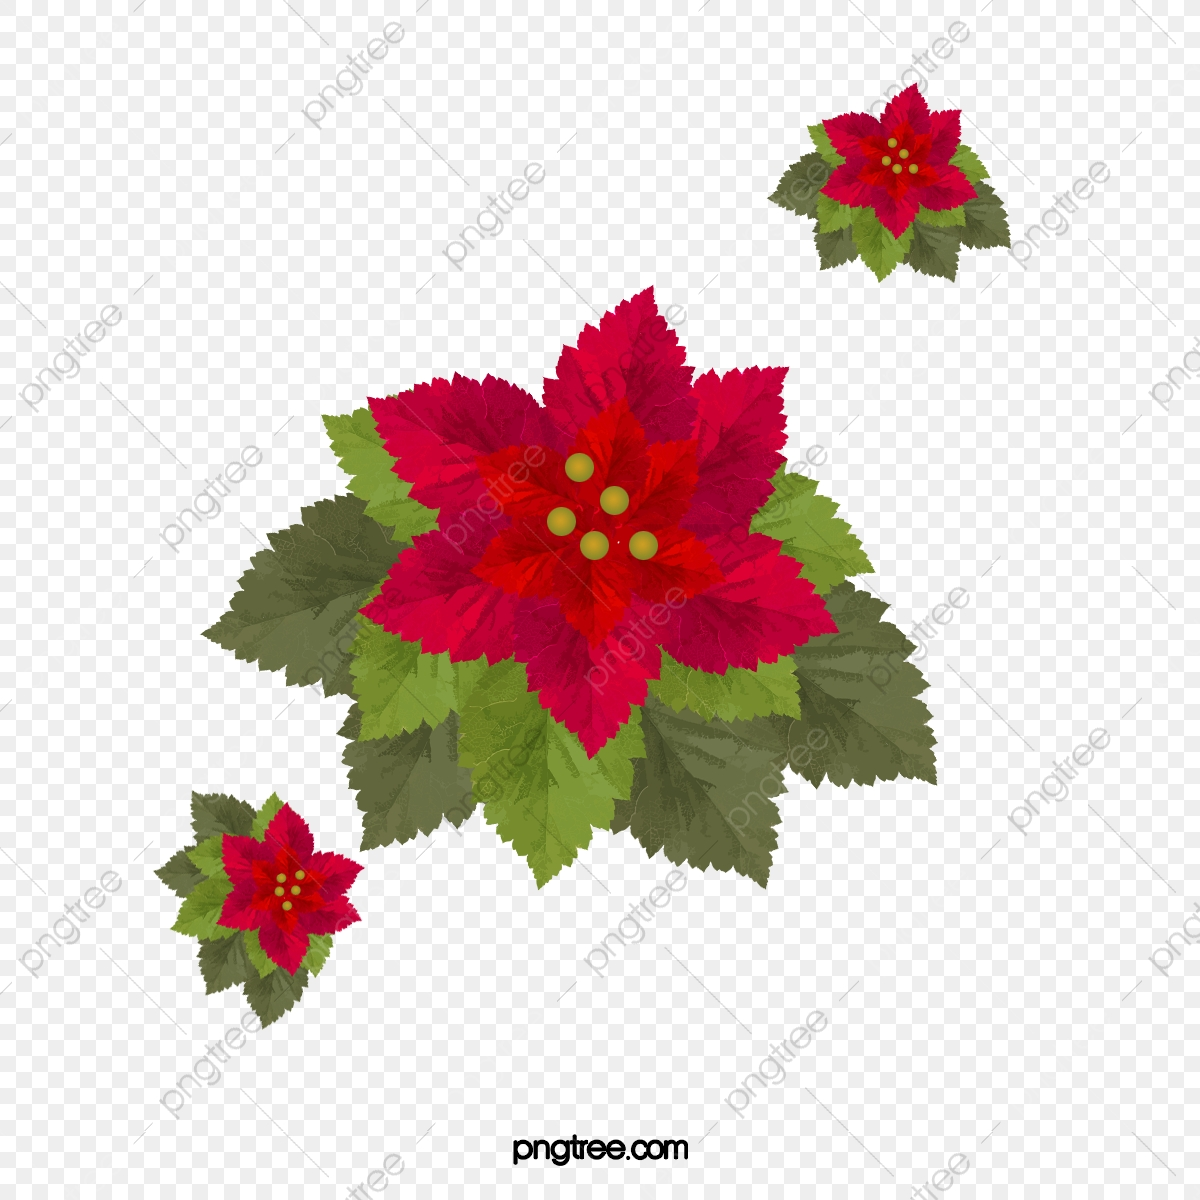 Poinsettia Painted Vector Material, Poinsettia, Hand Painted.